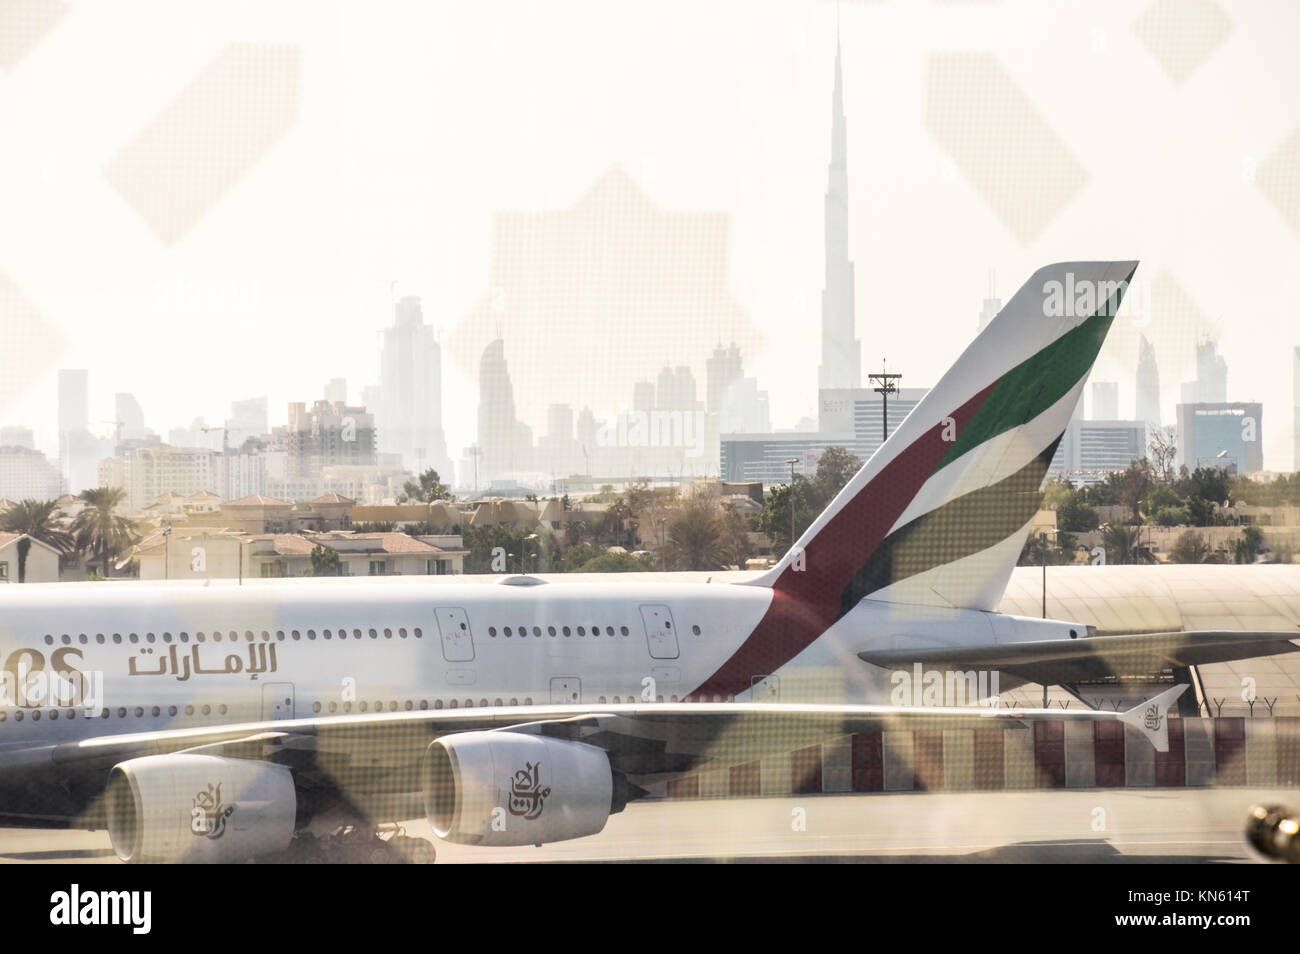 Emirates Airline A380 Jumbo at Dubai Airport with the view